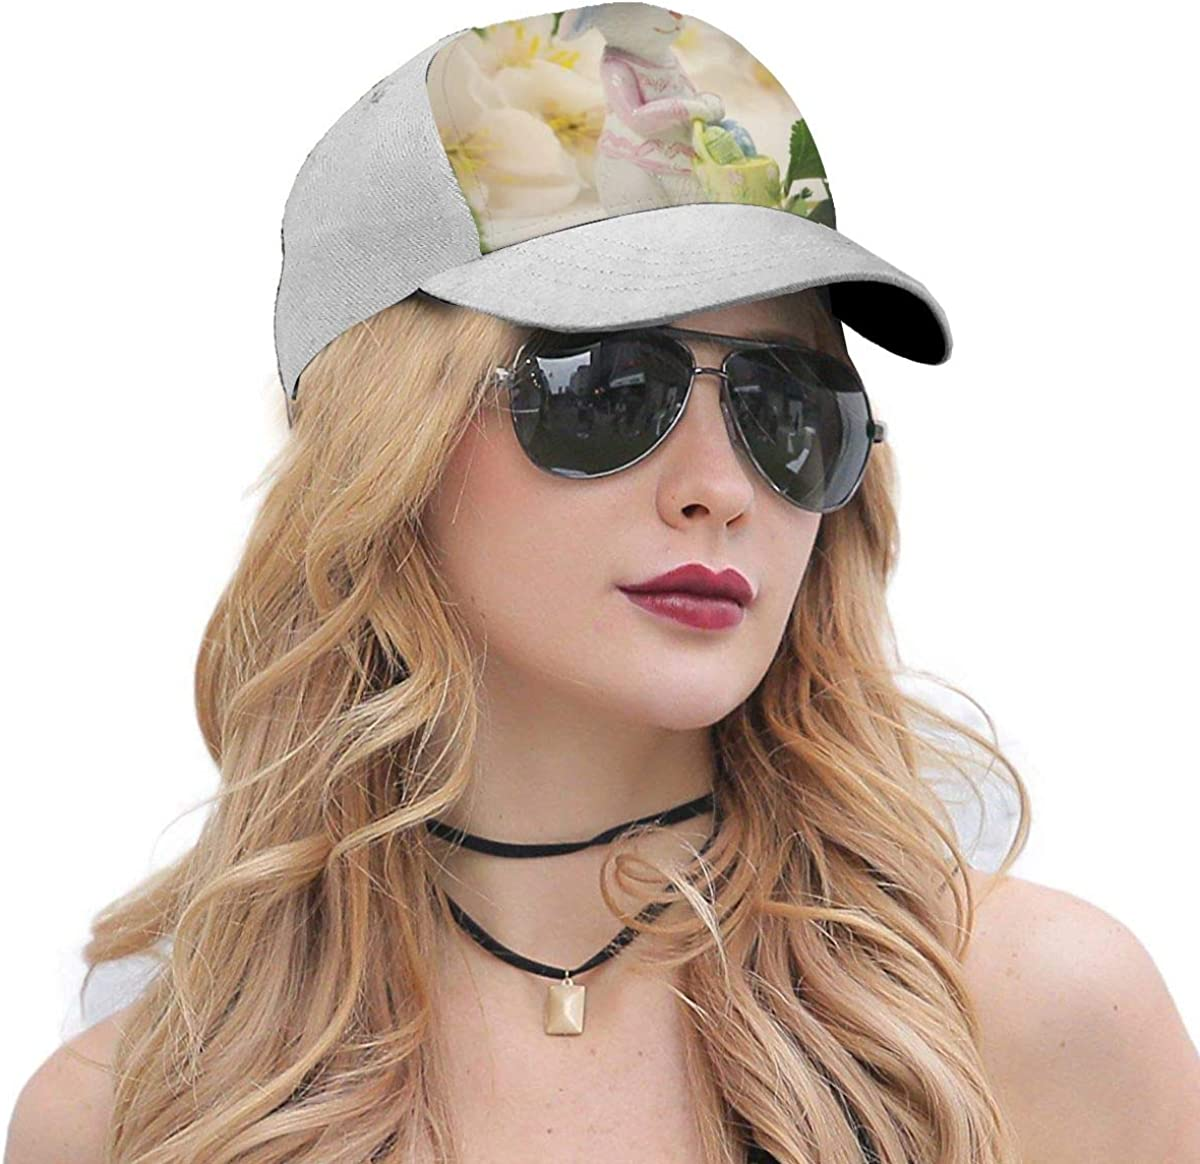 Easter Day Baseball Cap for Both Men and Women.It Can Shape Your Face,Protect Your Hair and Eyes from The Sun.